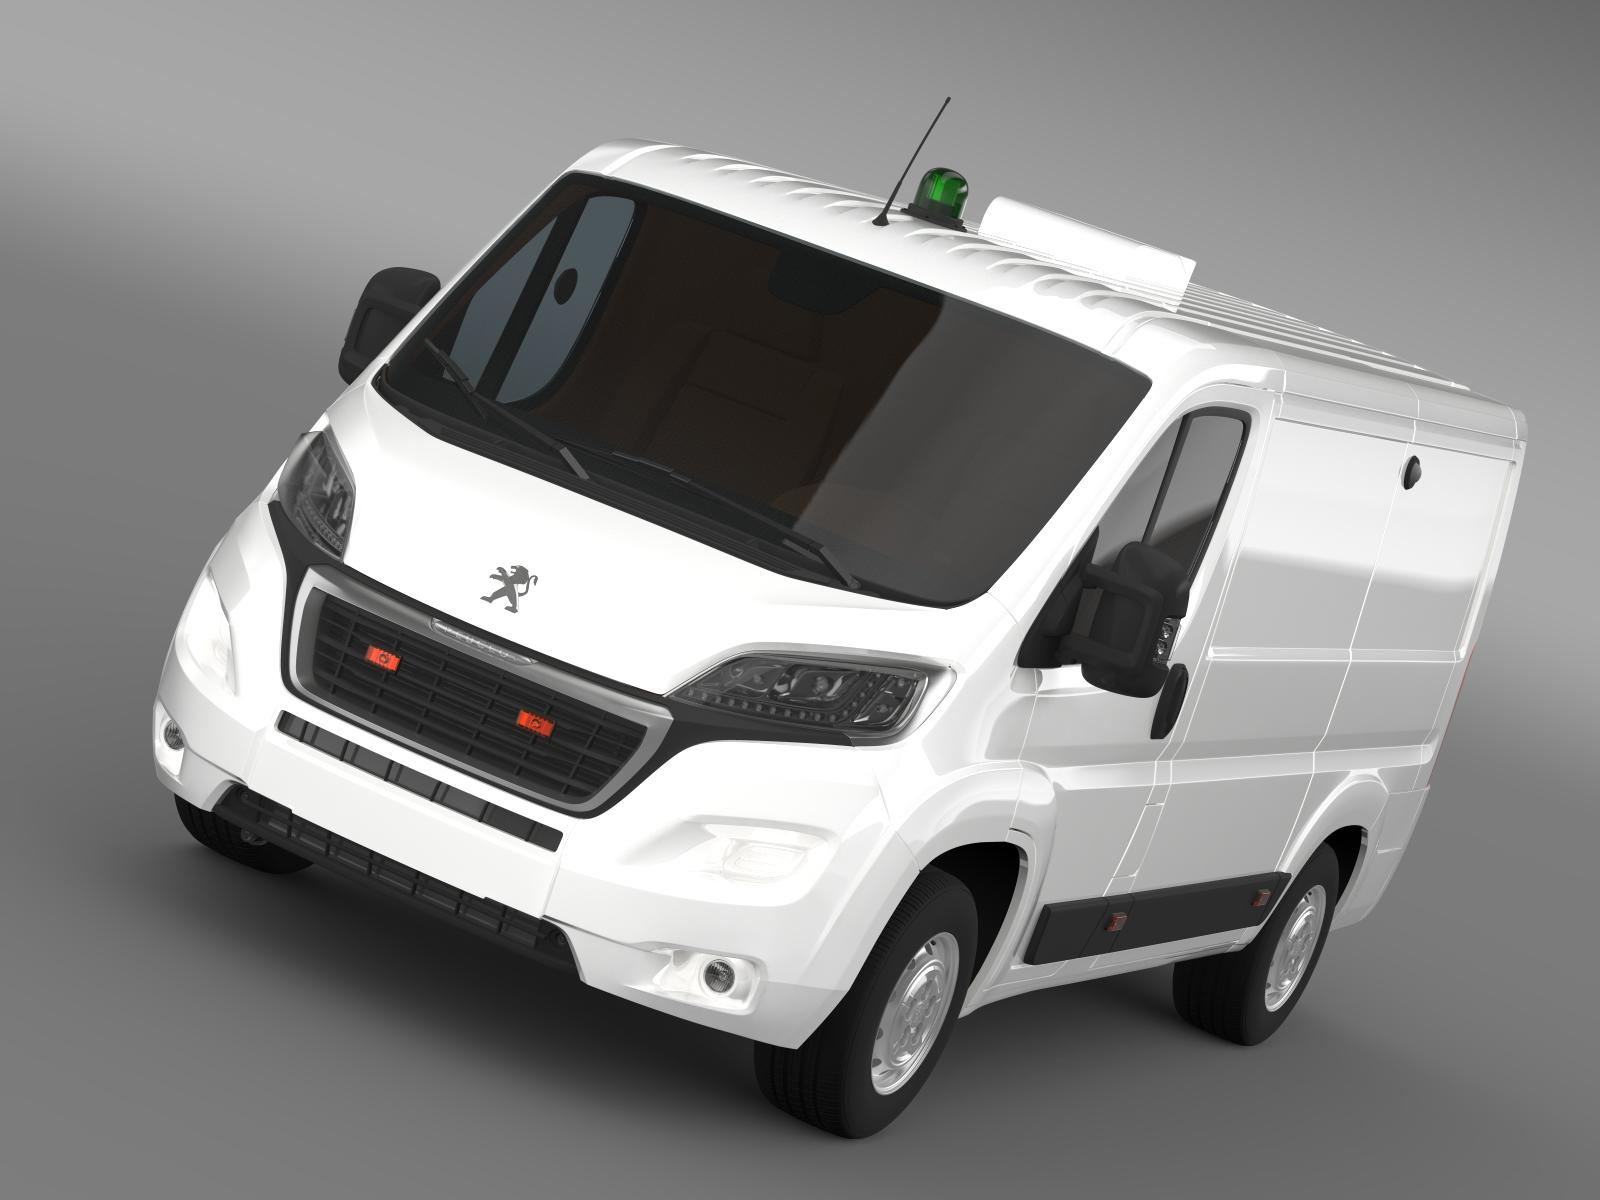 peugeot boxer collection services 2015 3d model 3ds max fbx c4d lwo ma mb hrc xsi obj 203891